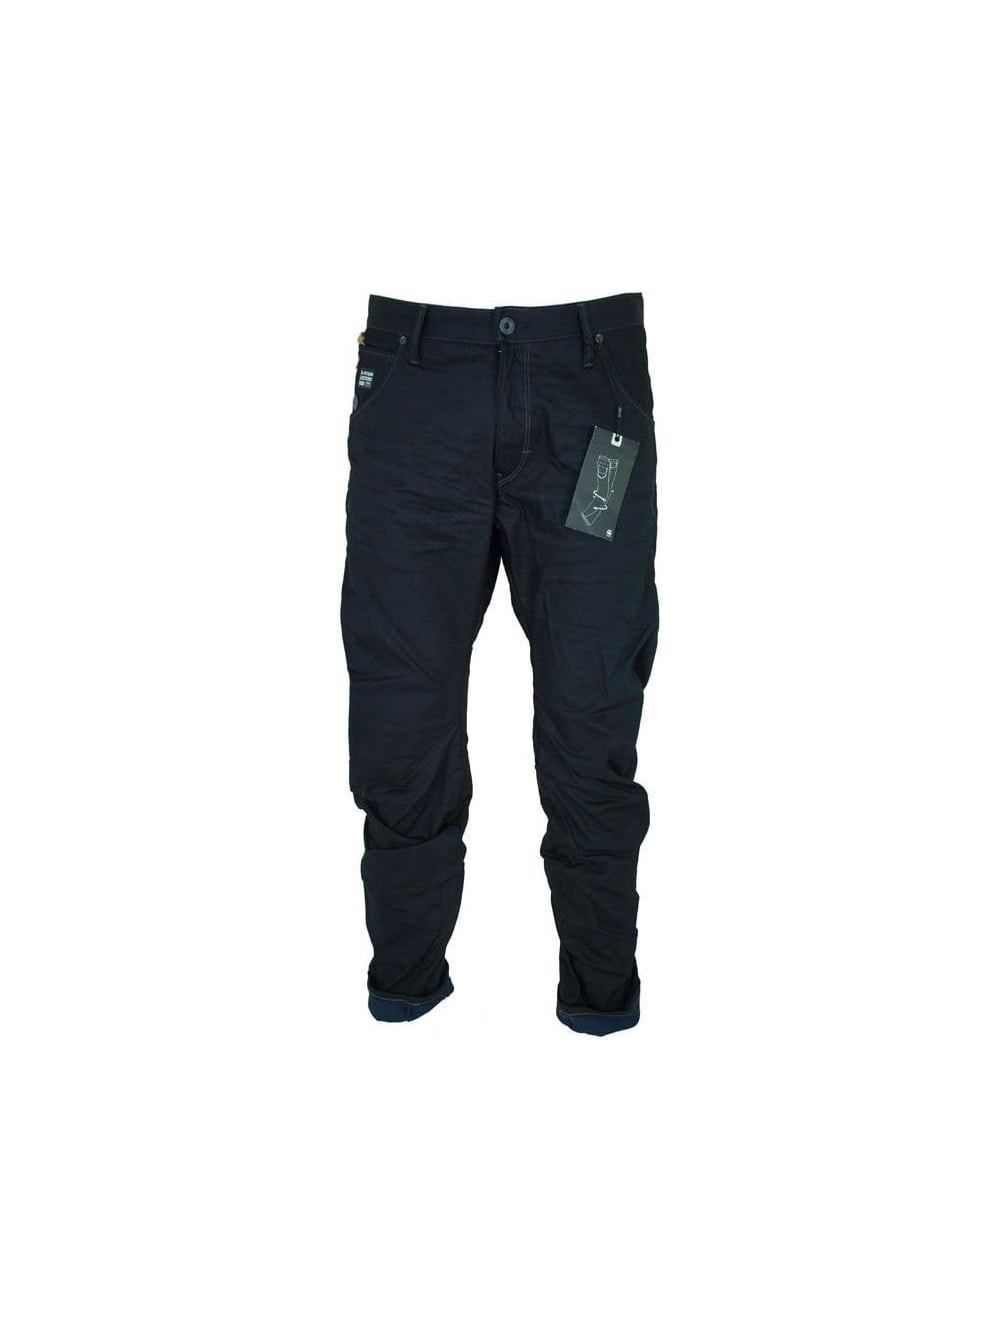 c7fa0dd3f45 G Star - G Star Arc Loose Tapered Jeans - 3D Resin - G Star Jeans at ...